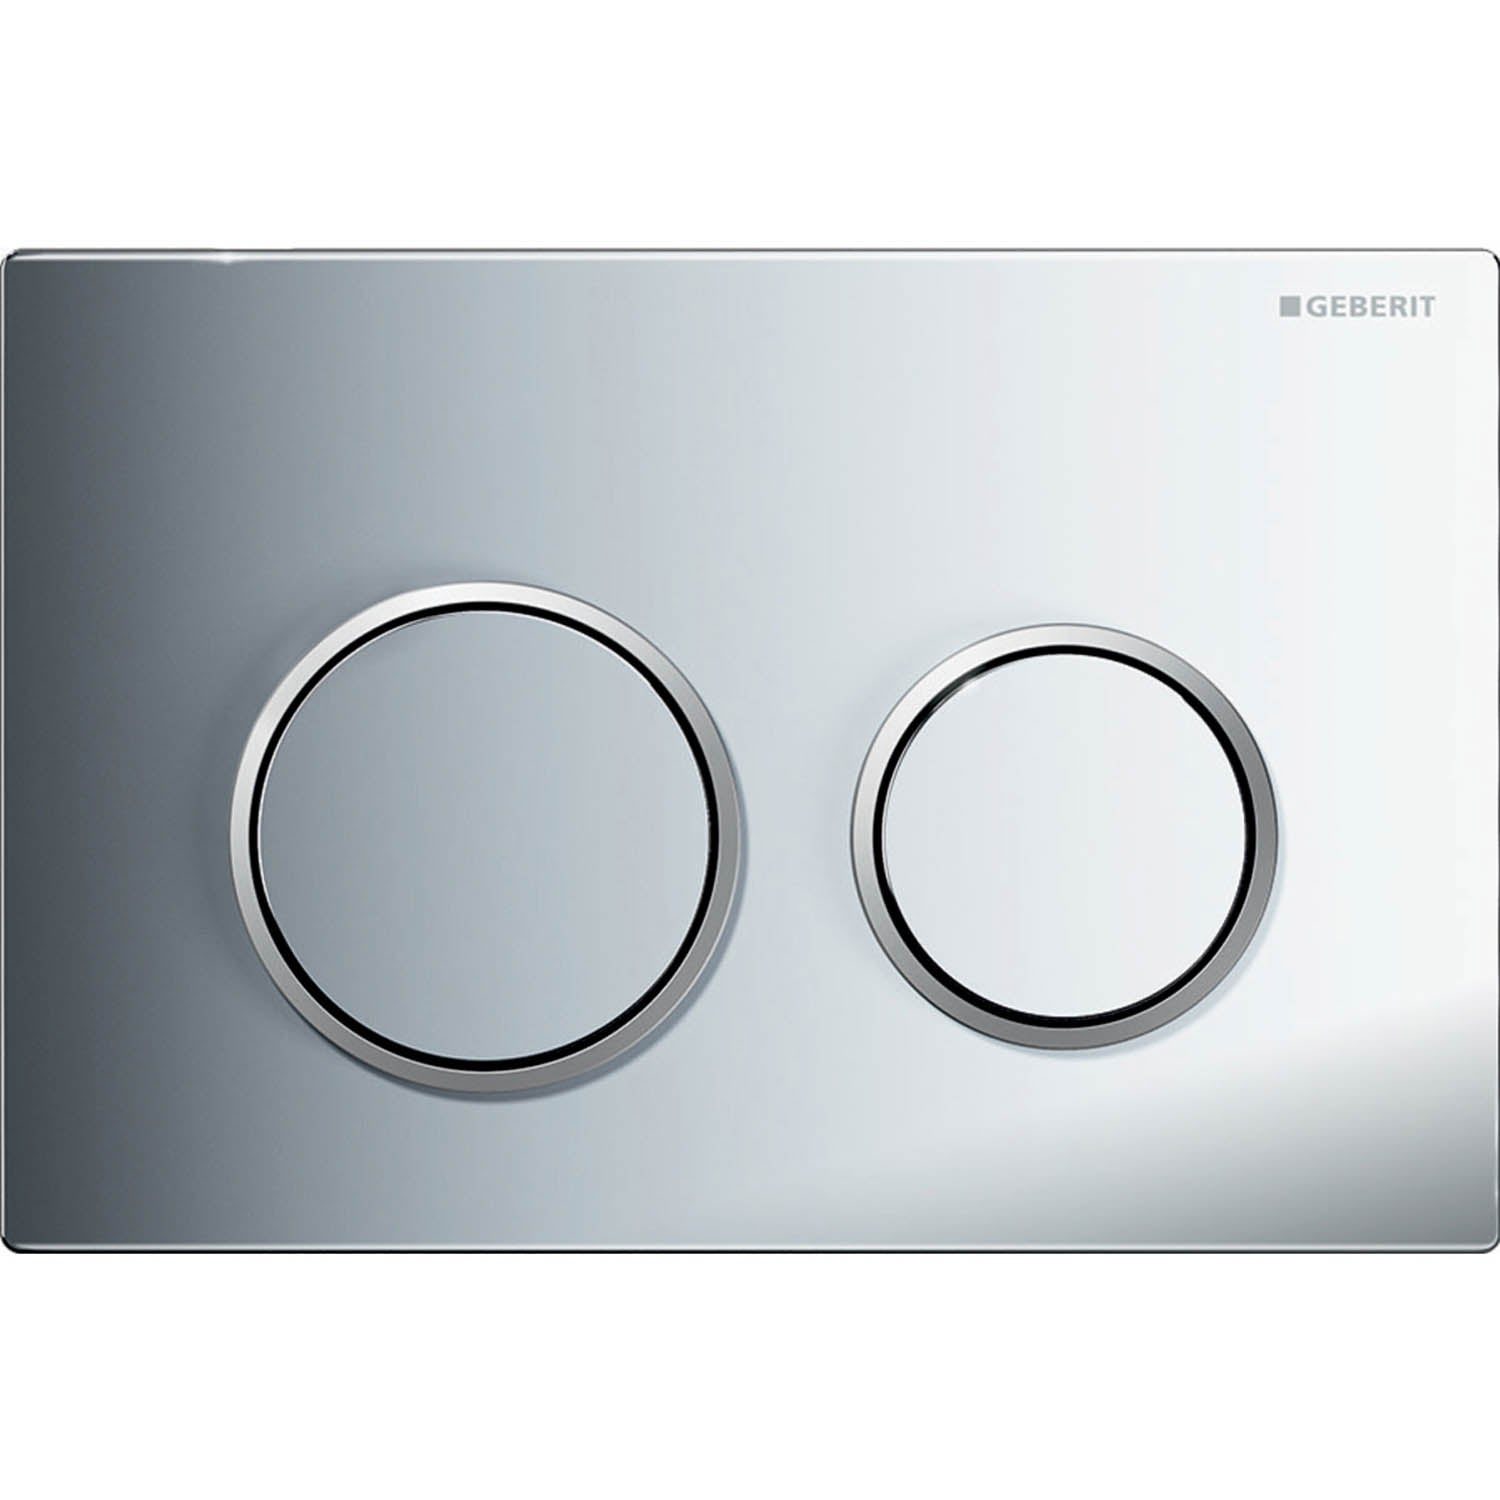 Omega Round Dual Action Flush Plate with a gloss chrome finish on a white background